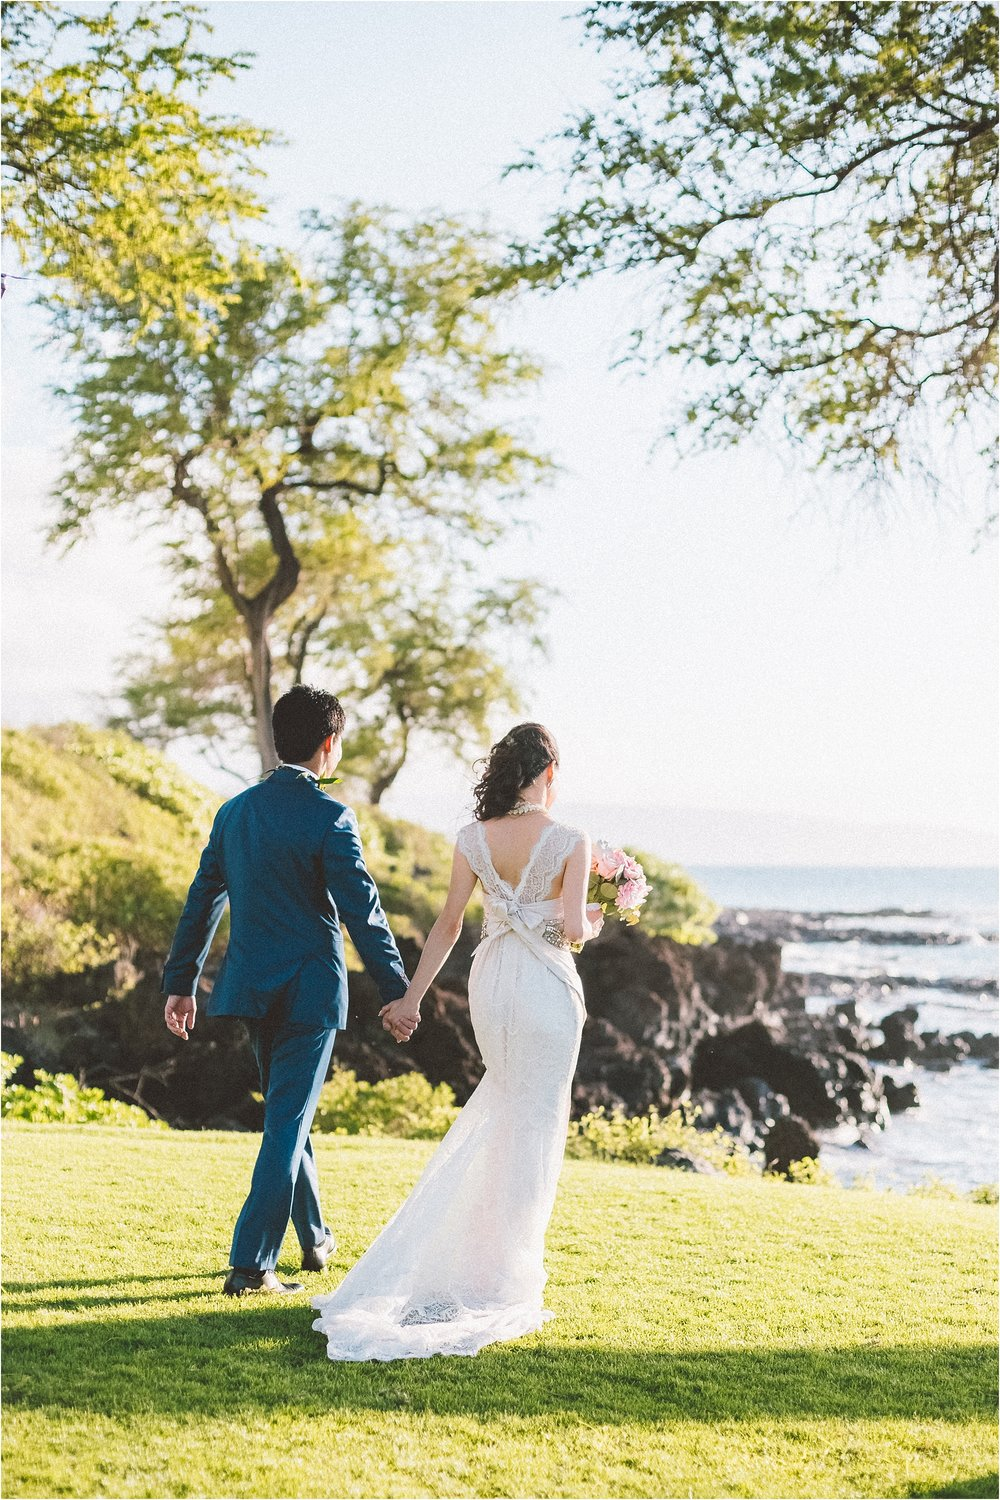 angie-diaz-photography-maui-hawaii-destination-wedding-makena-golf-beach-club_0046.jpg